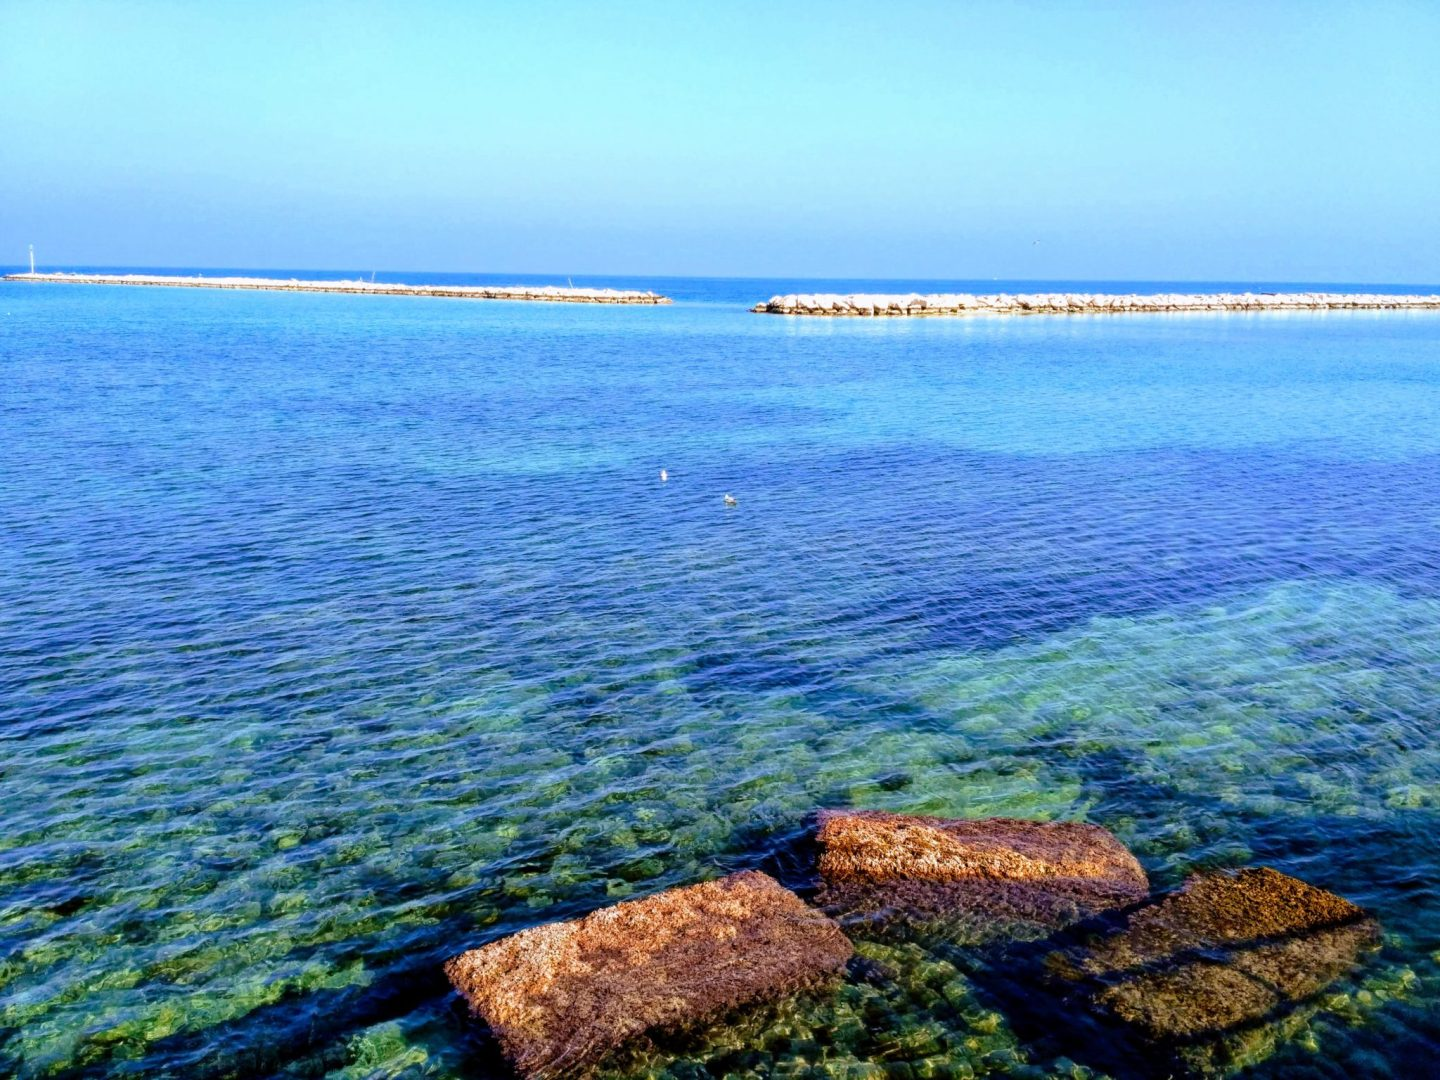 blue water at the beach in Bari, Italy